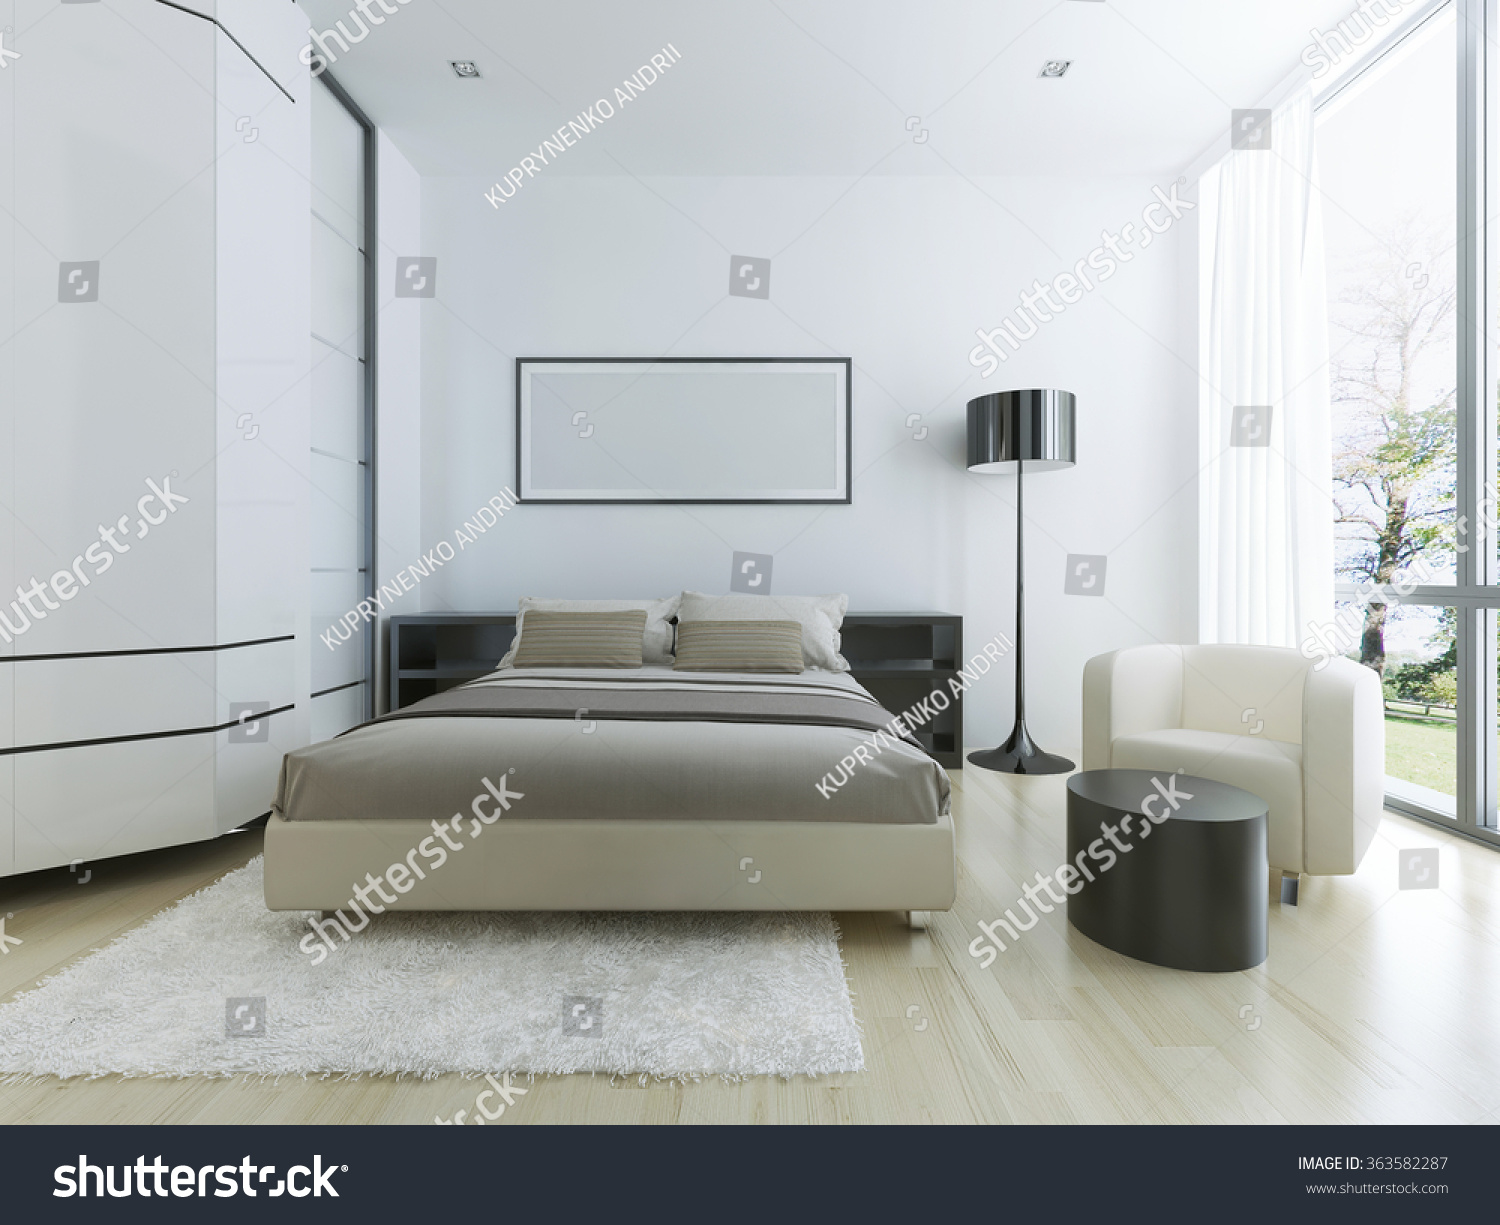 Luxury Hotel Room White Large Panoramic Stock Illustration 363582287 ...